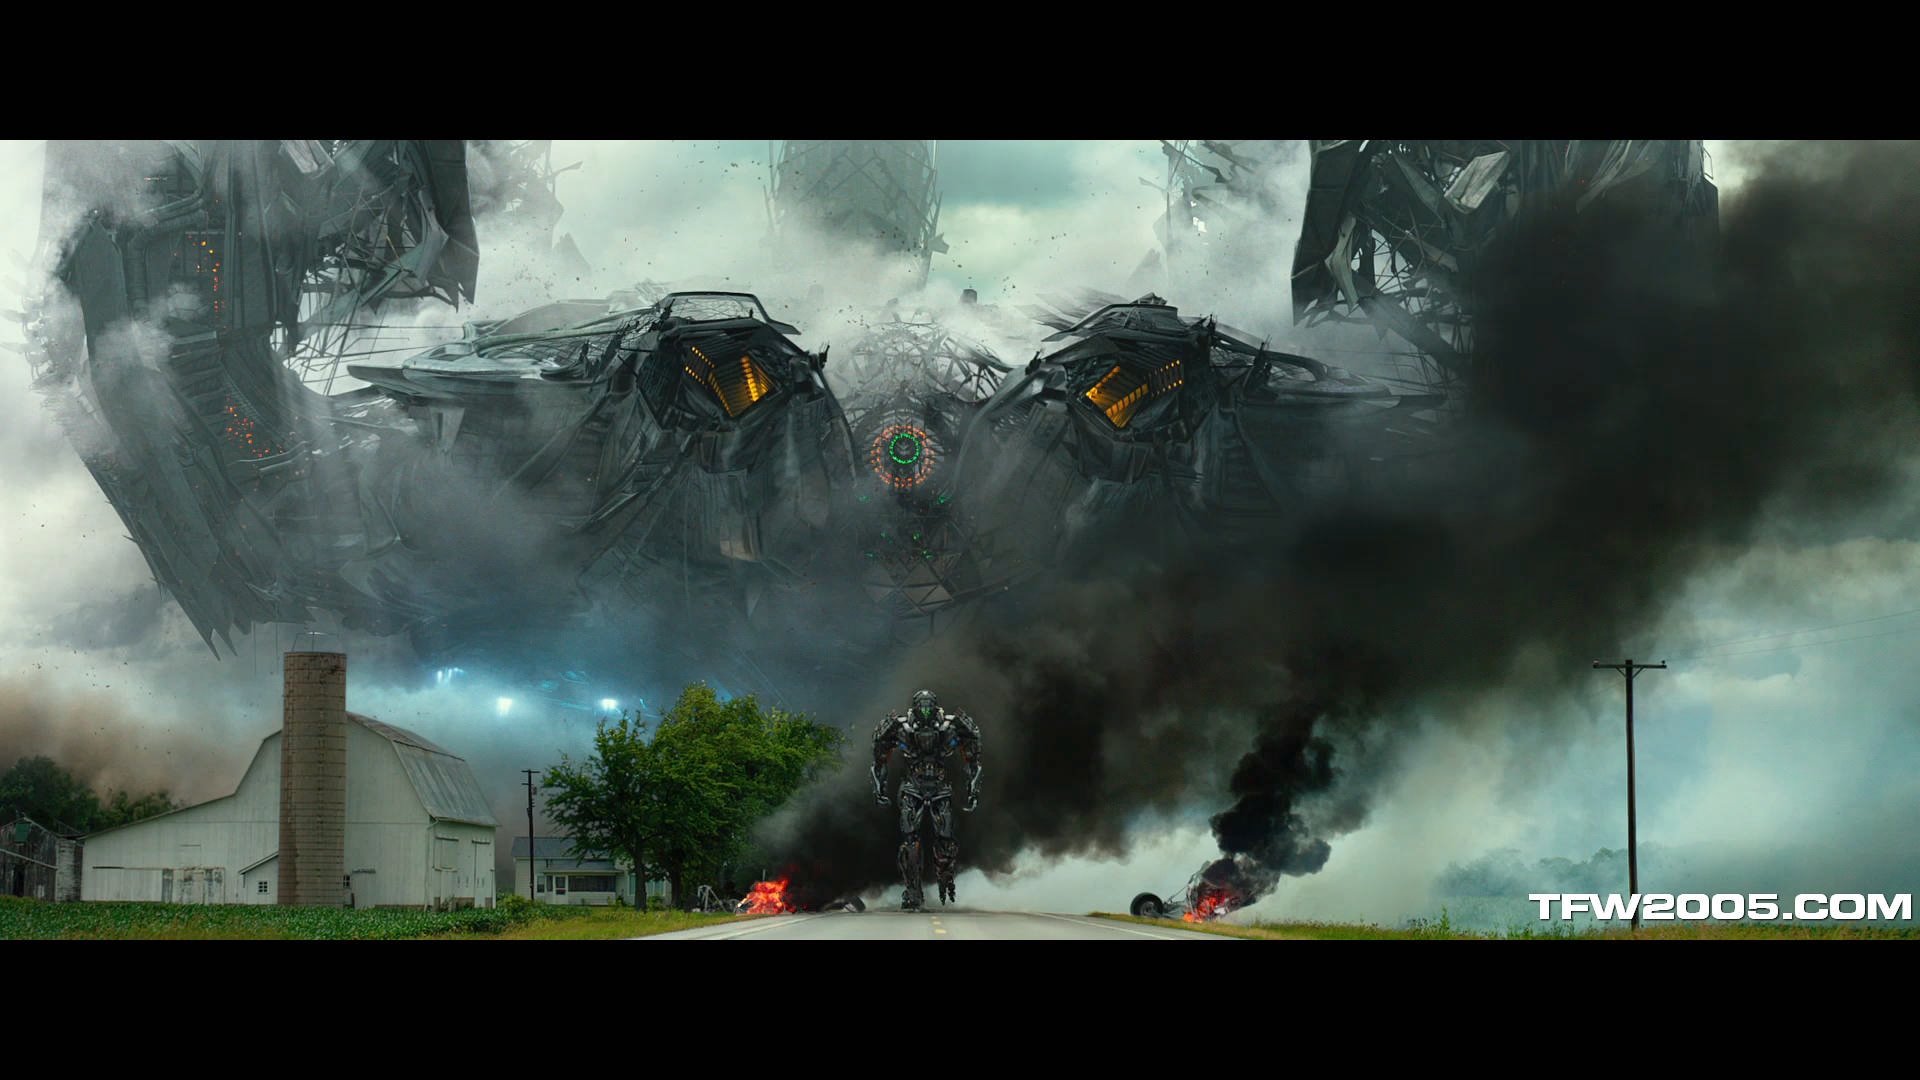 transformers 4 trailer 2 analysis essay